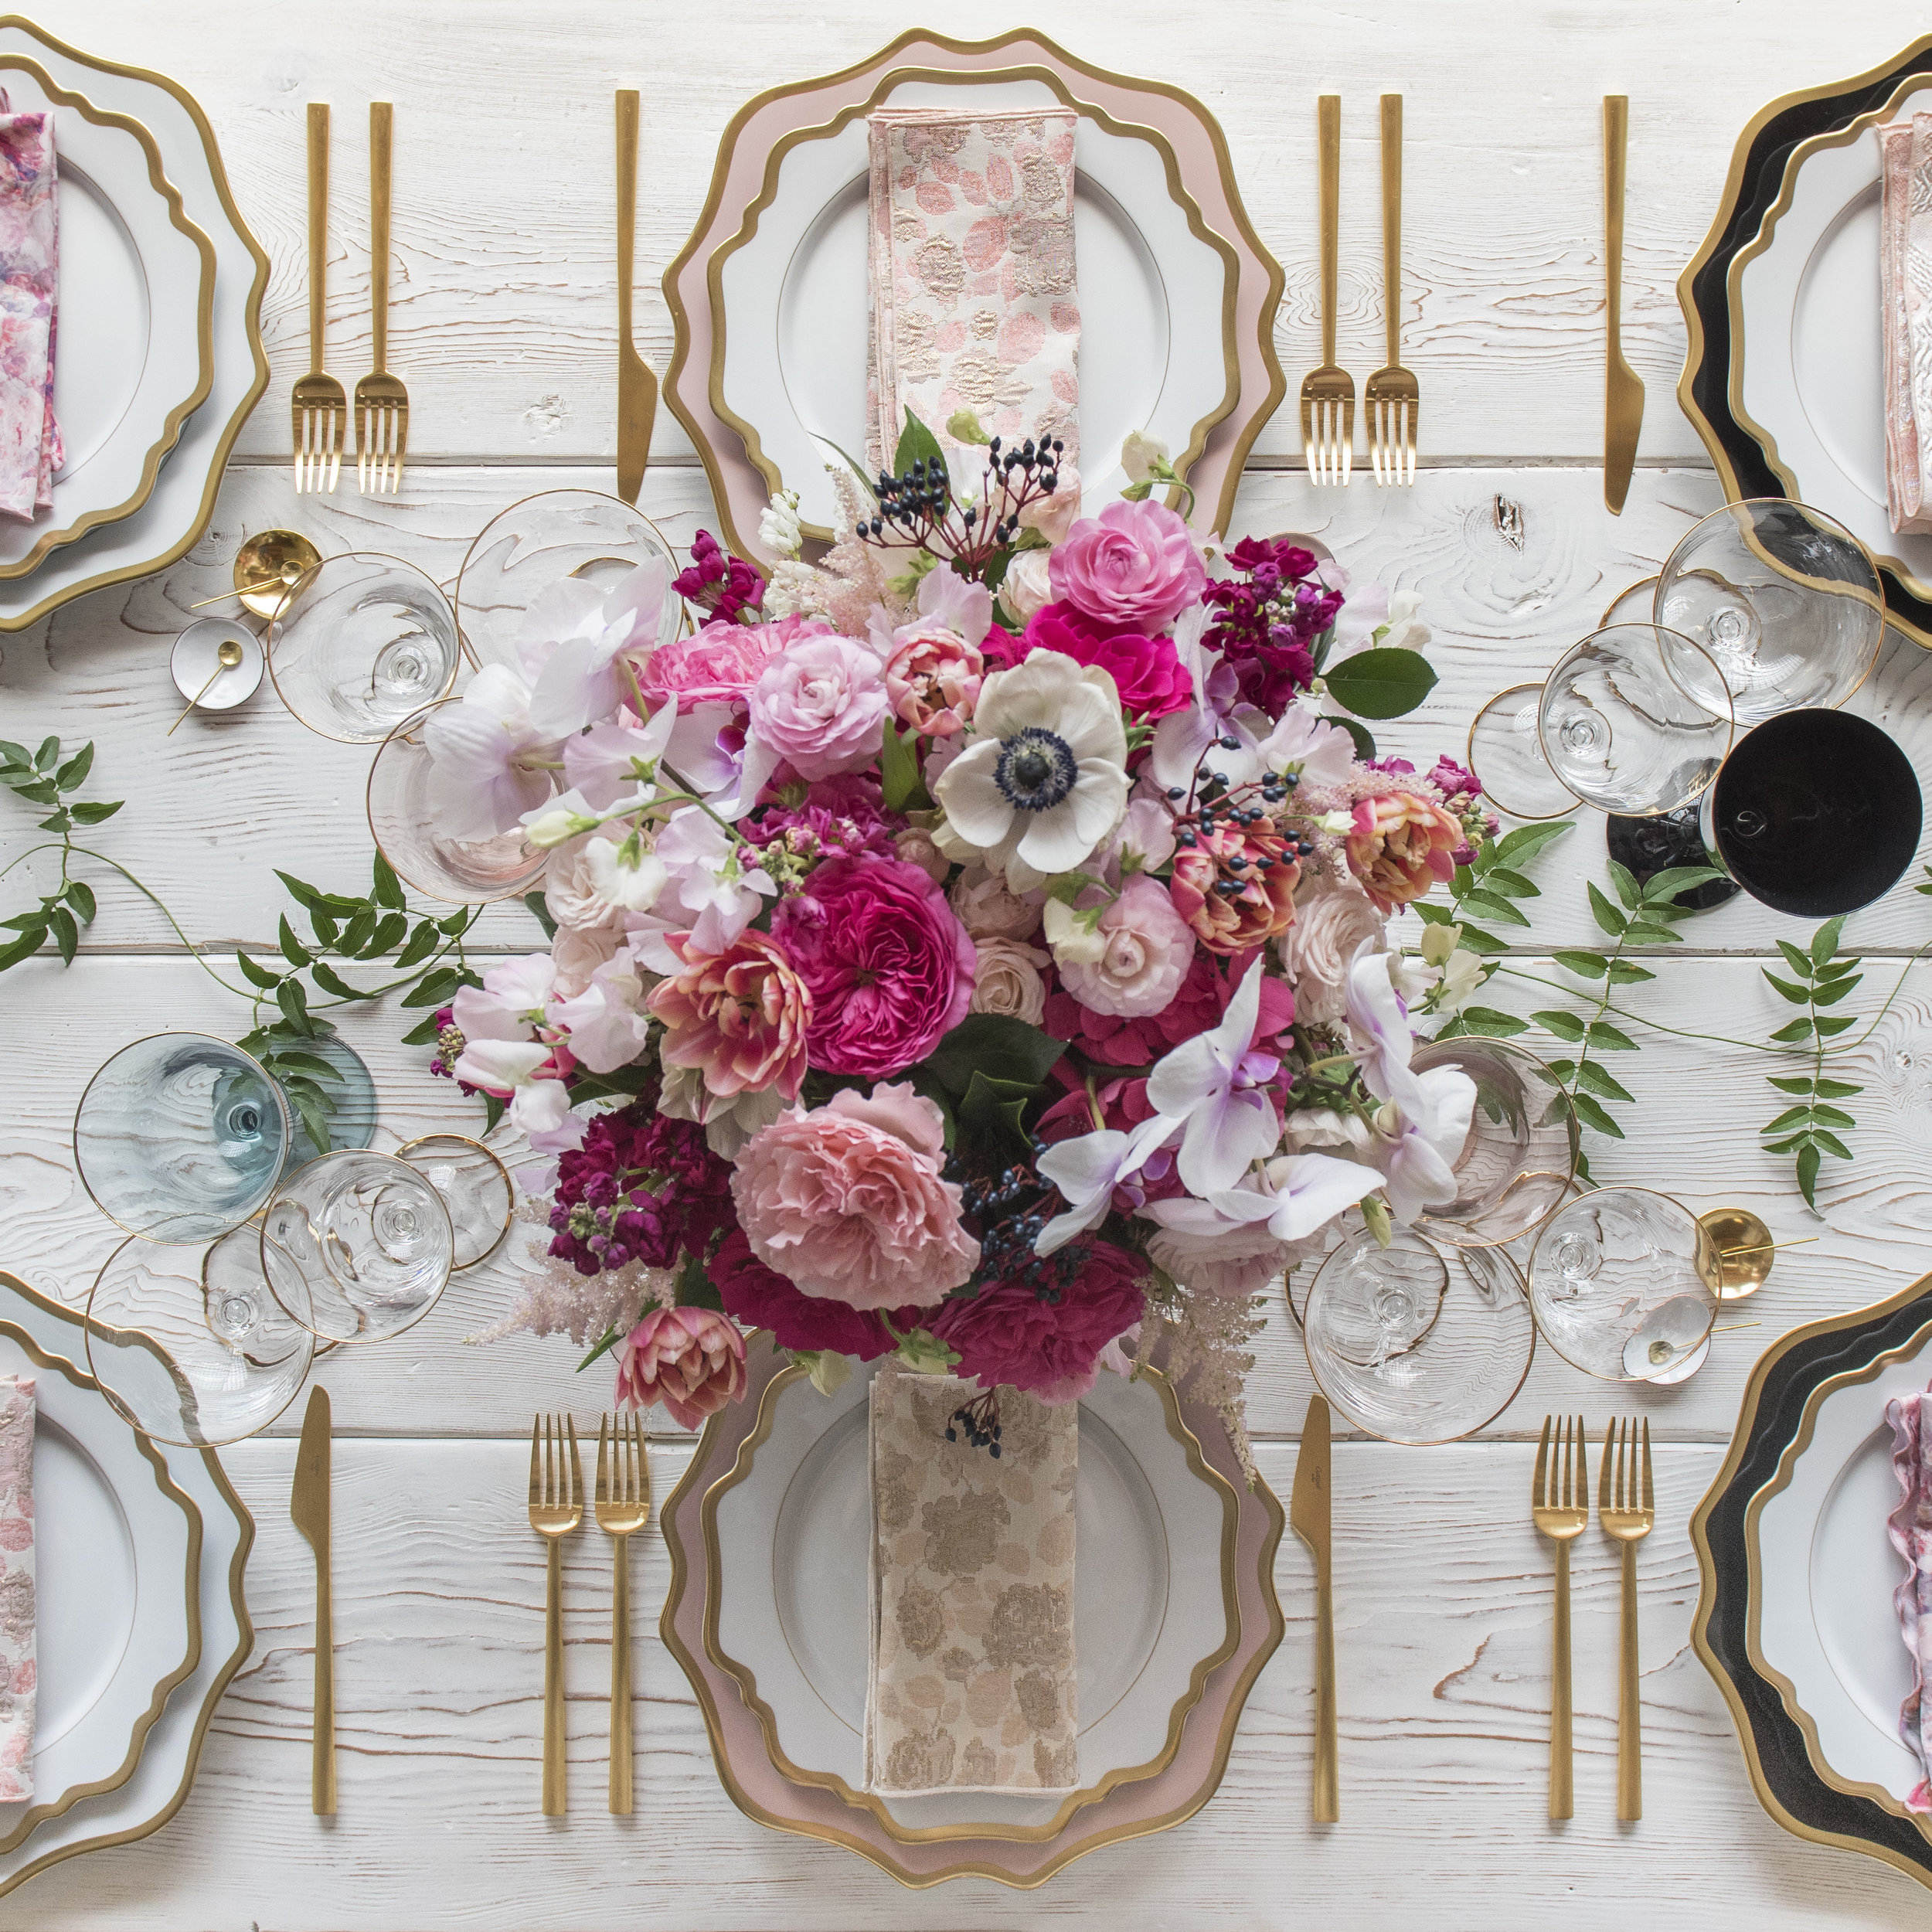 RENT: Anna Weatherley Chargers in White/Gold, Desert Rose/Gold, Black/Gold + Anna Weatherley Dinnerware in White/Gold + Rondo Flatware in Brushed 24k Gold + Chloe 24k Gold Rimmed Stemware + Chloe 24k Gold Rimmed Goblets in Agave/Blush/Black + 14k Gold Salt Cellars + White Enamel Salt Cellars + Tiny Gold Spoons   SHOP: Anna Weatherley Dinnerware in White/Gold + Rondo 24k Gold Flatware + Chloe 24k Gold Rimmed Stemware + 14k Gold Salt Cellars + White Enamel Salt Cellars + Tiny Gold Spoons